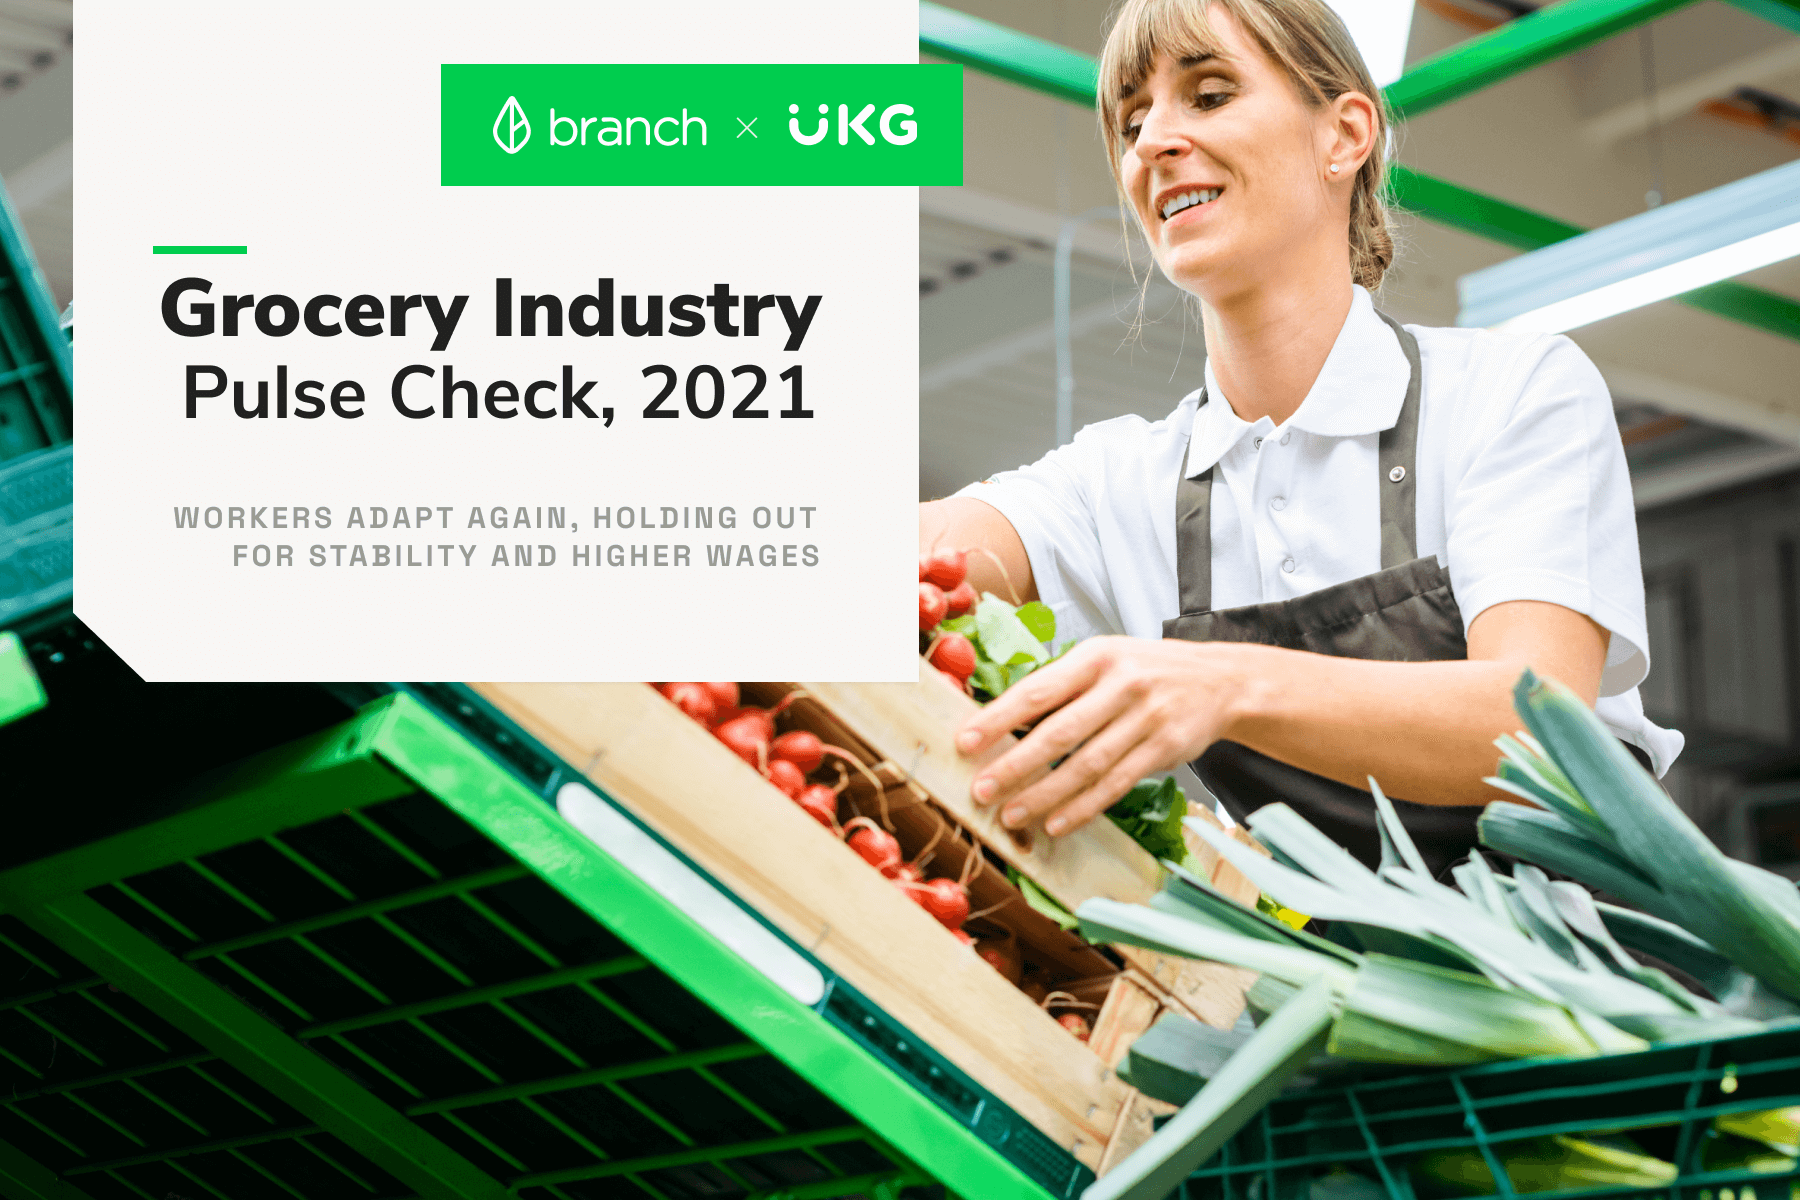 Grocery Industry Pulse Check 2021: Branch x UKG